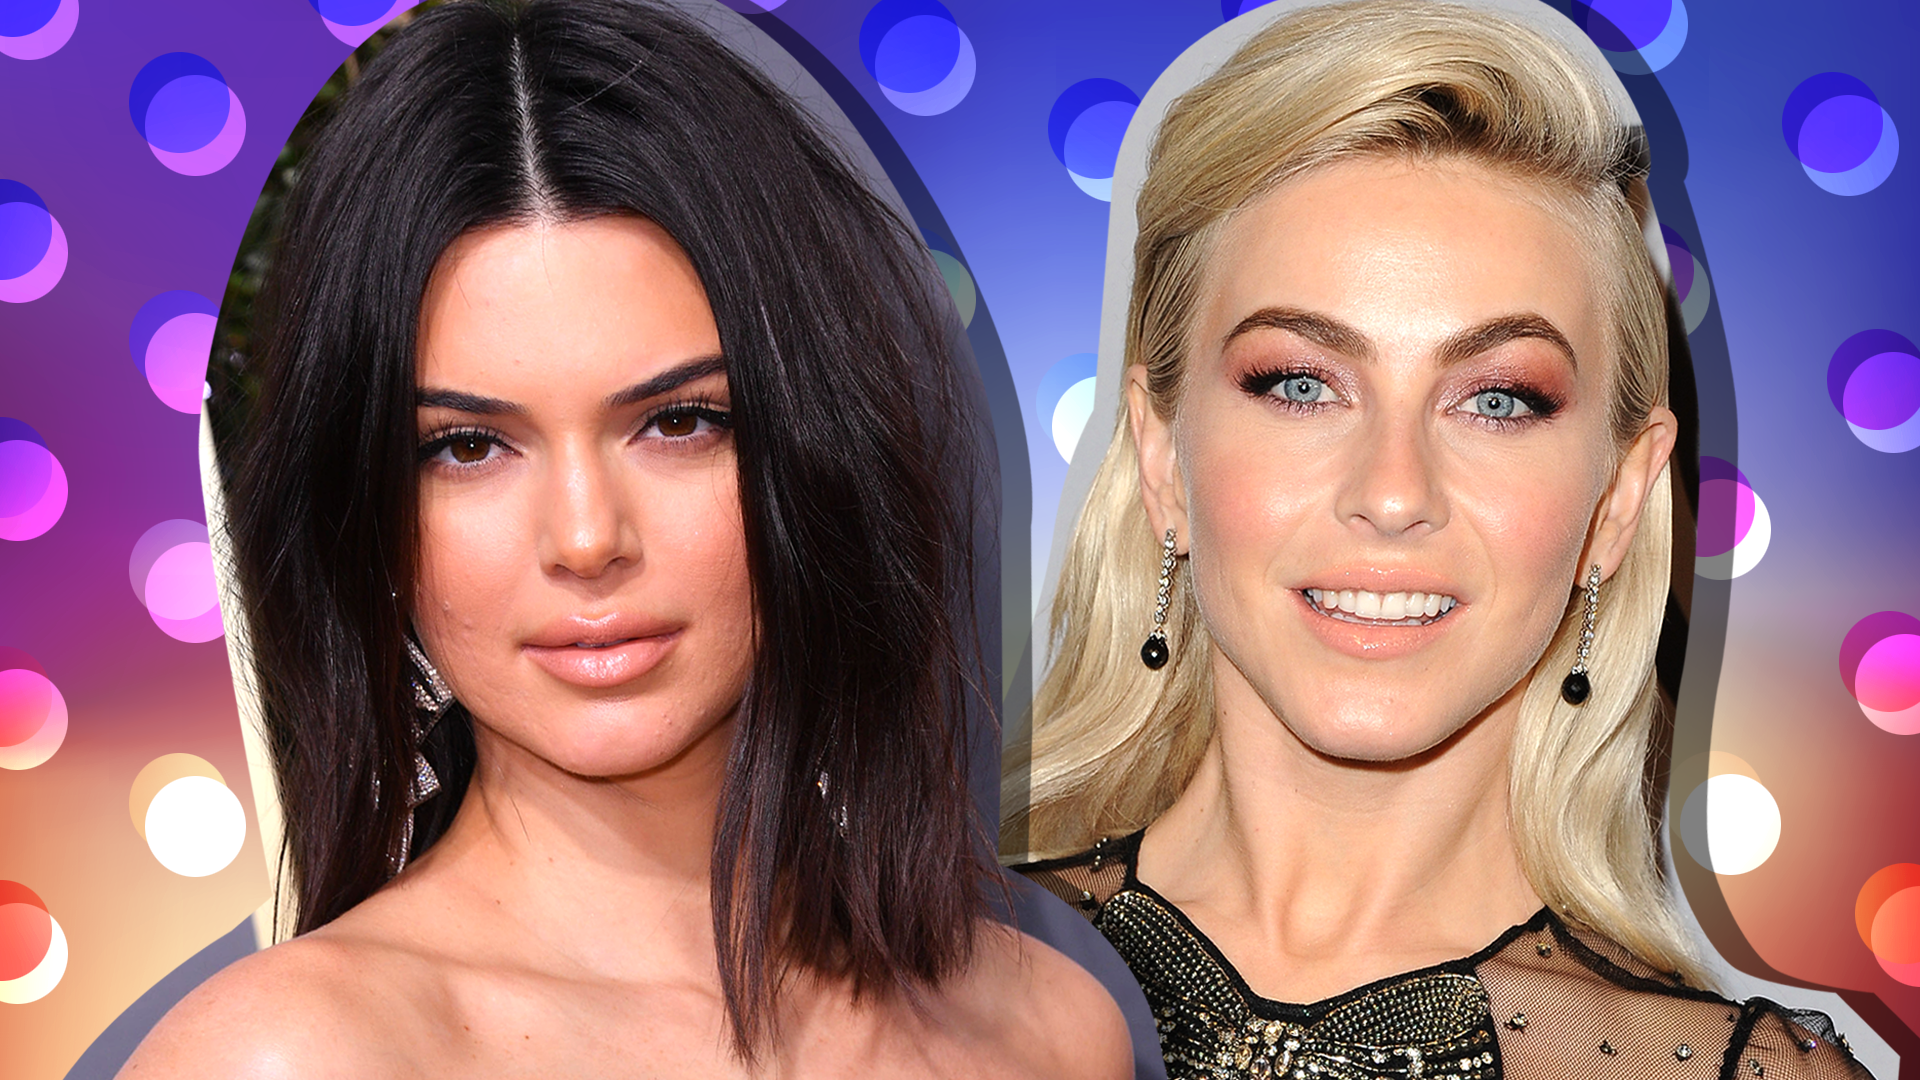 7 Creative Remedies Celebrities Swear By for Clearing up Breakouts